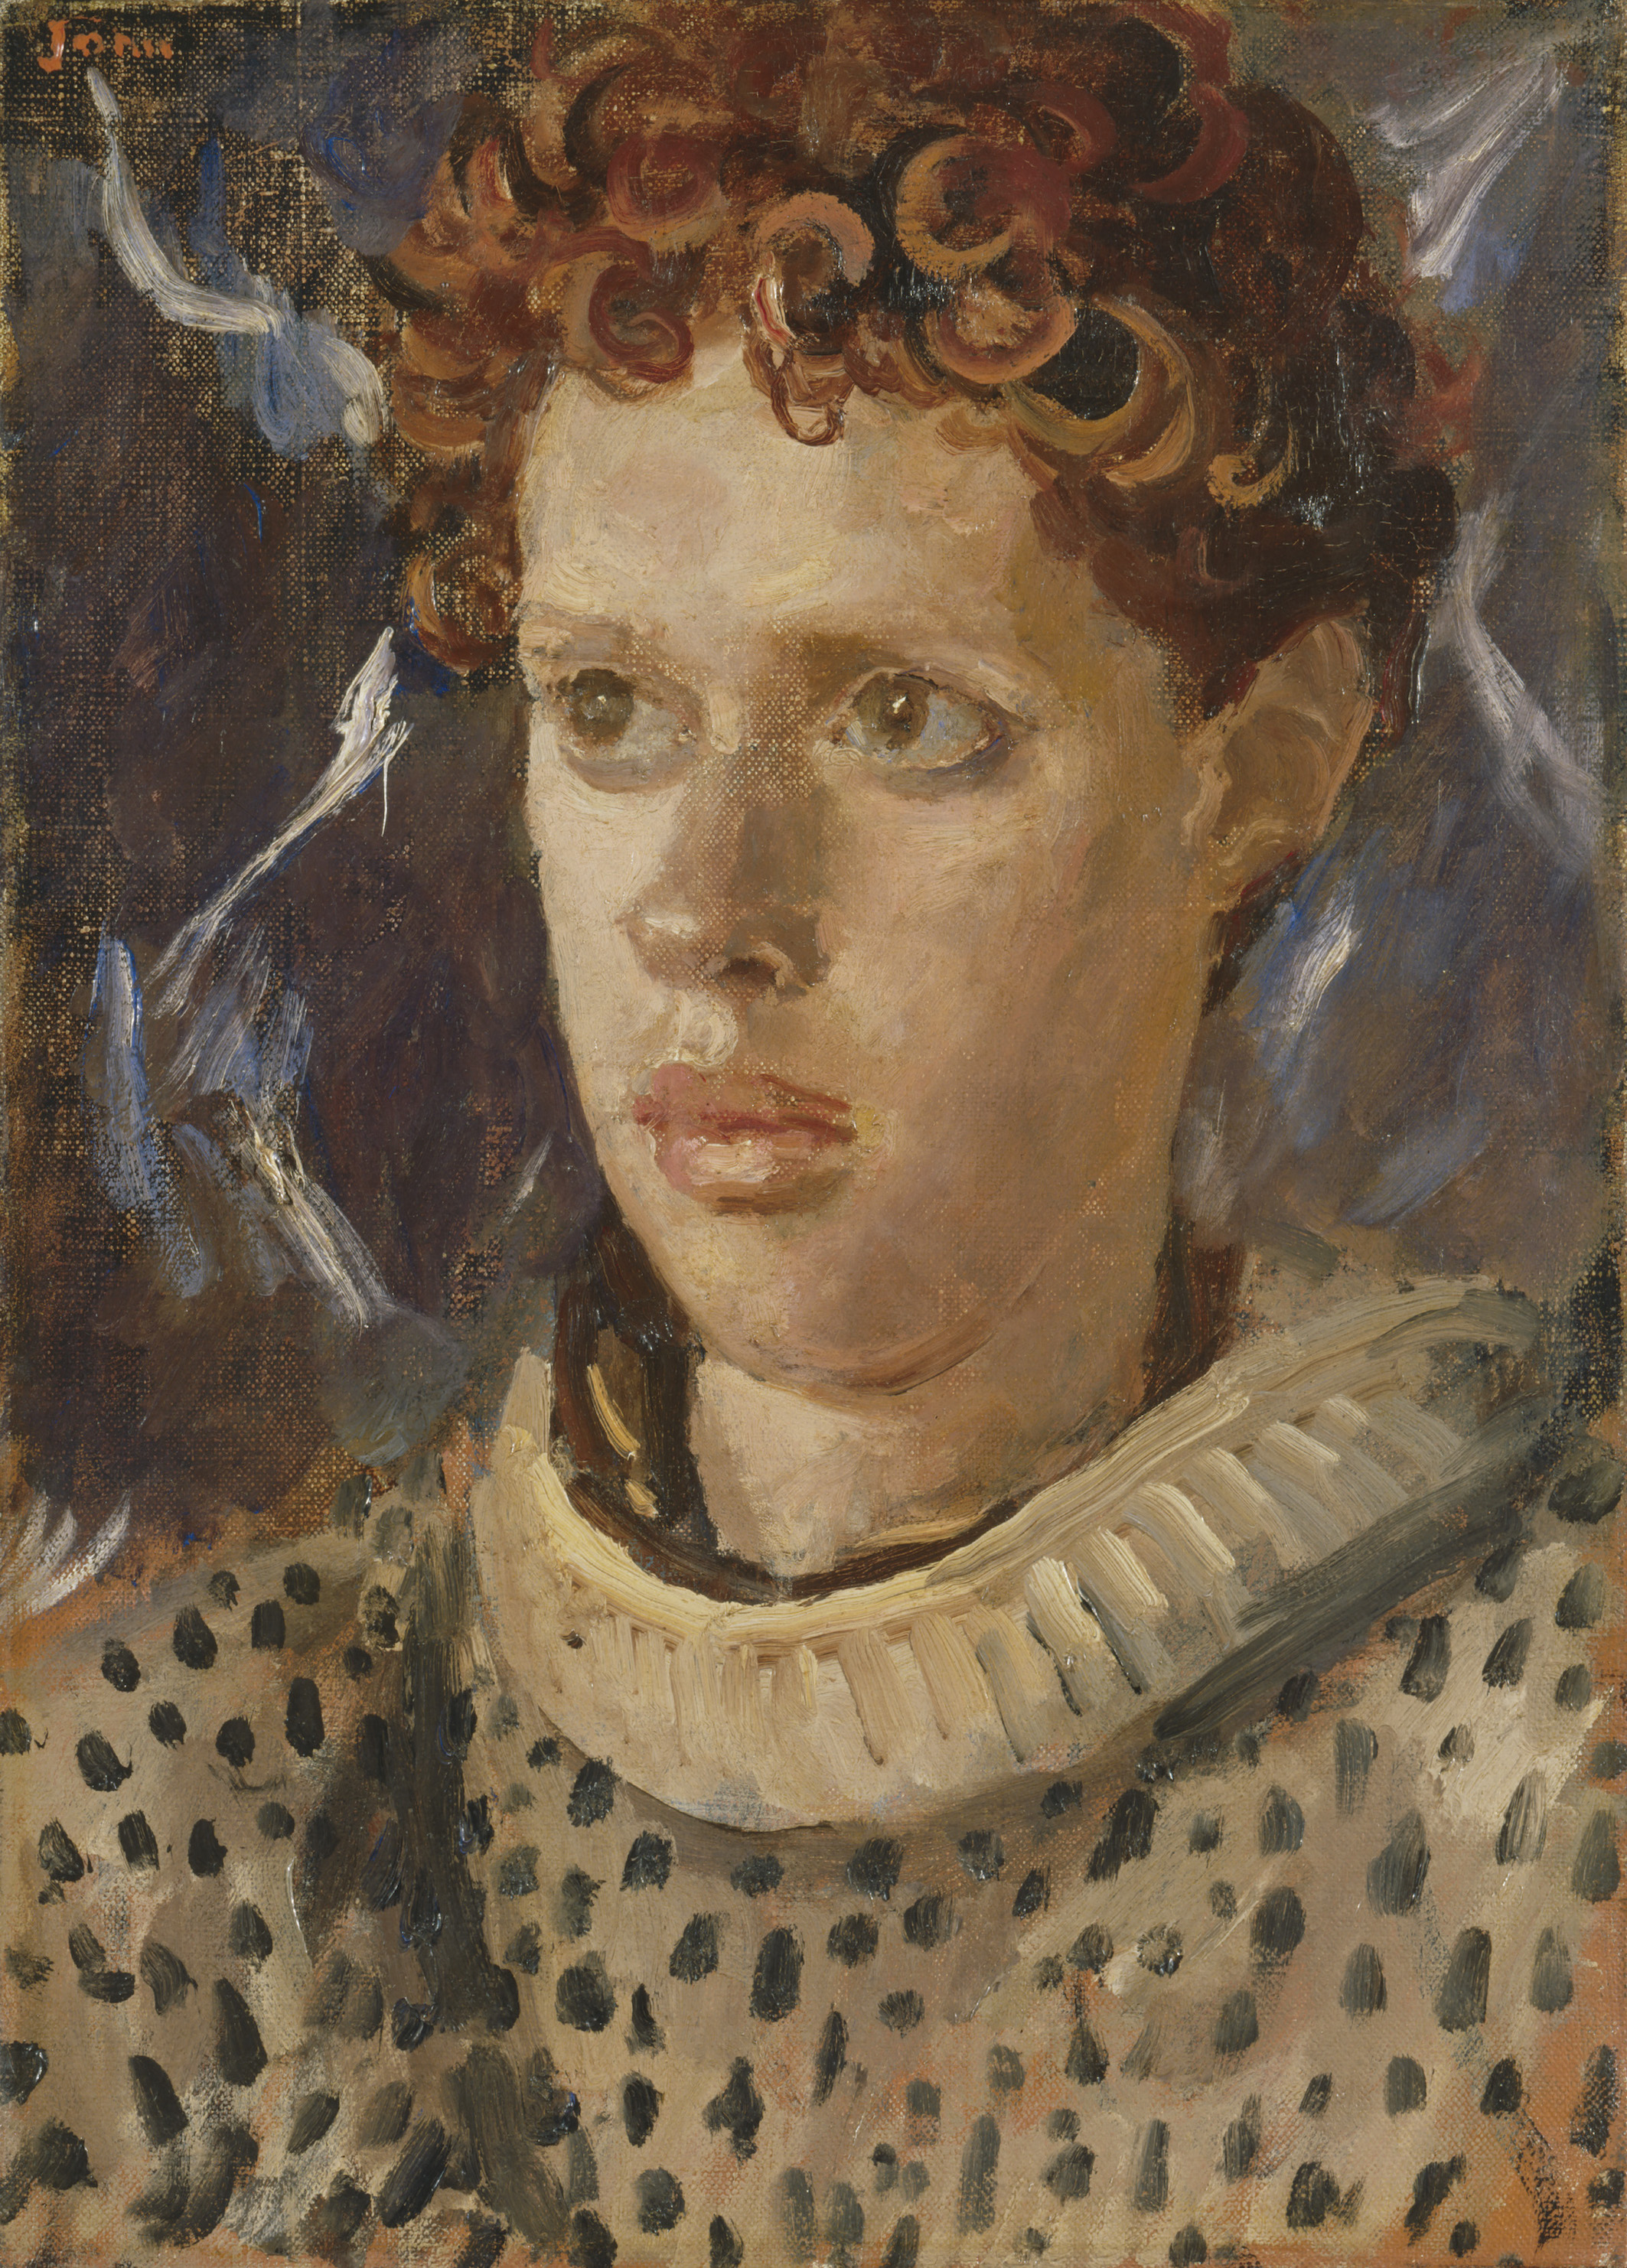 NPG acquires John's Dylan Thomas portrait – for Wales